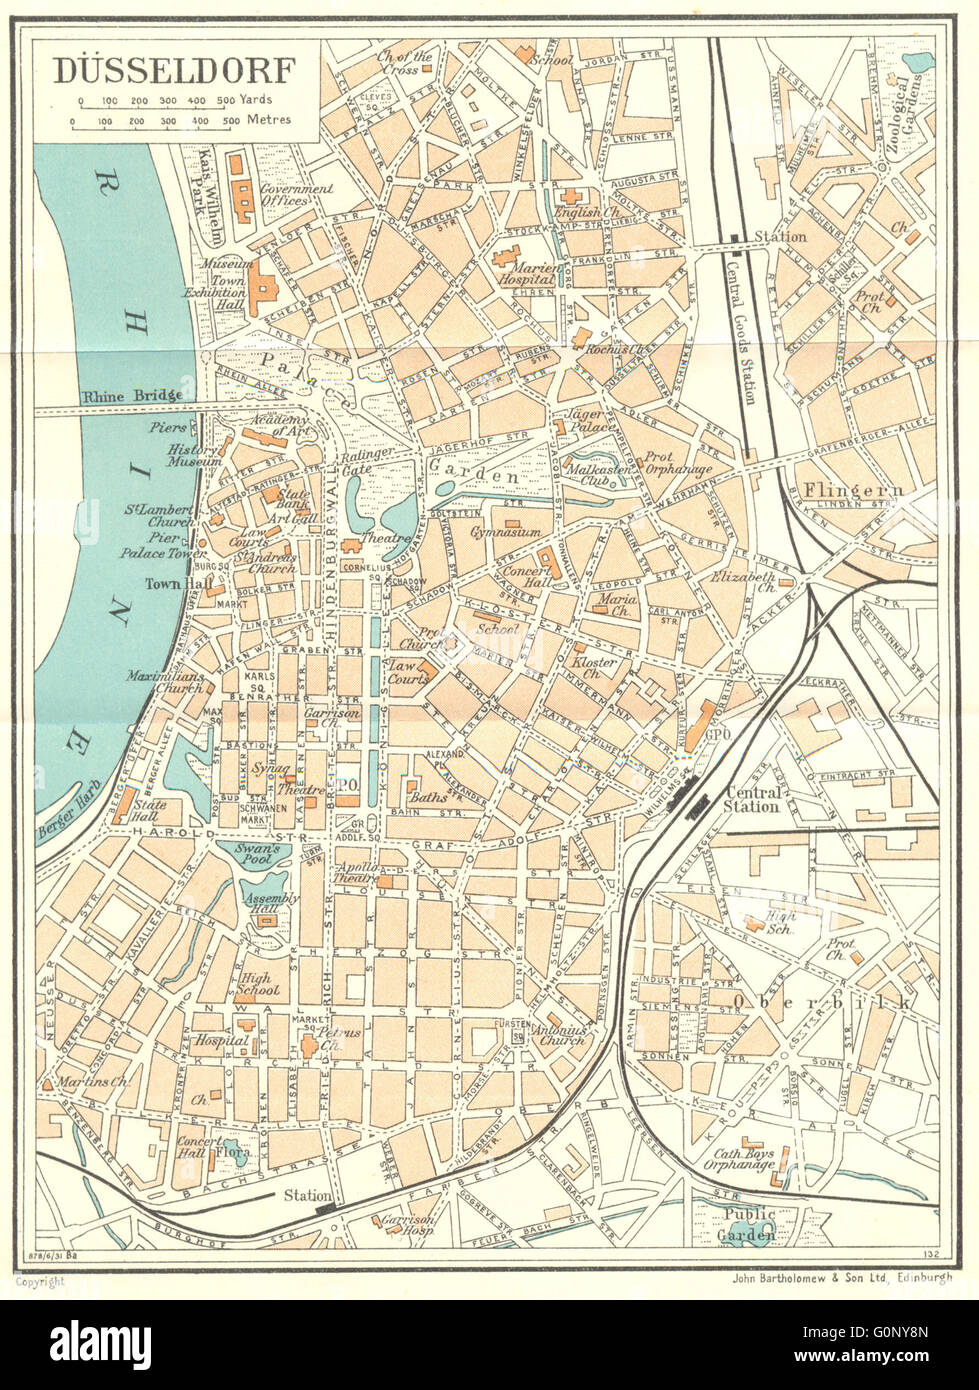 Map Of Germany Showing Dusseldorf.Germany Dusseldorf 1931 Vintage Map Stock Photo 103744613 Alamy